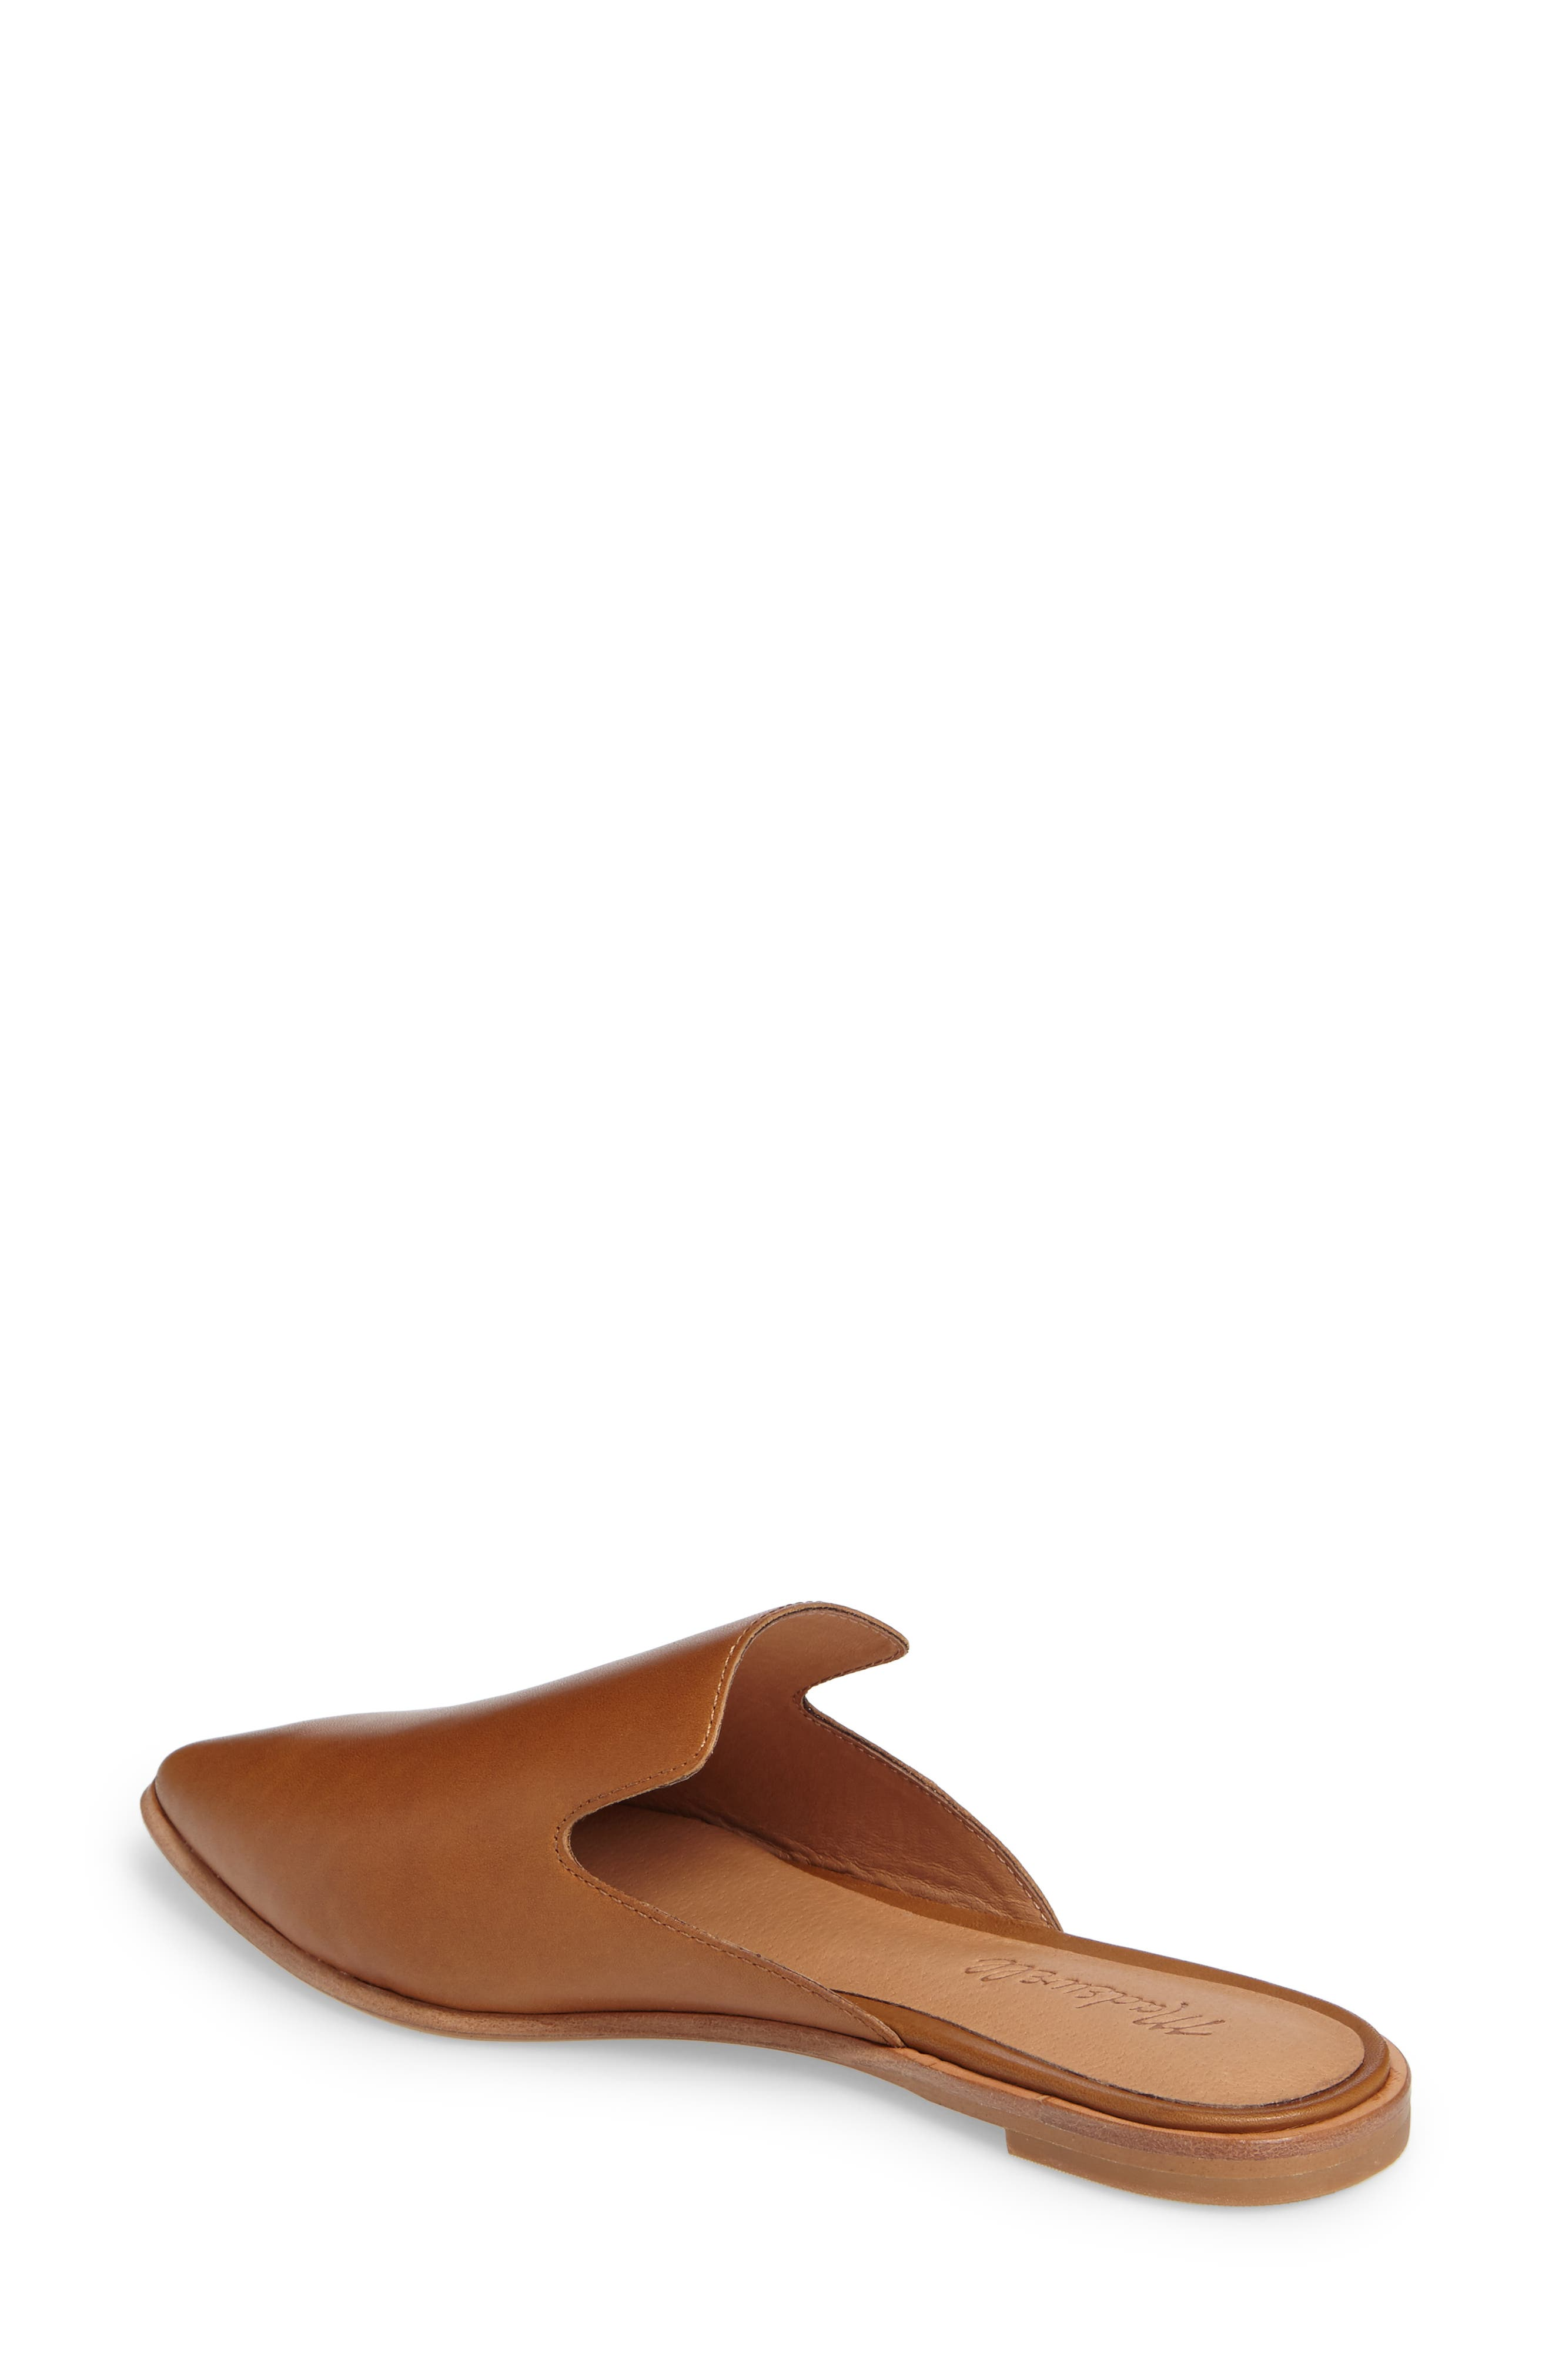 Alternate Image 2  - Madewell The Gemma Pointy Toe Mule (Women)